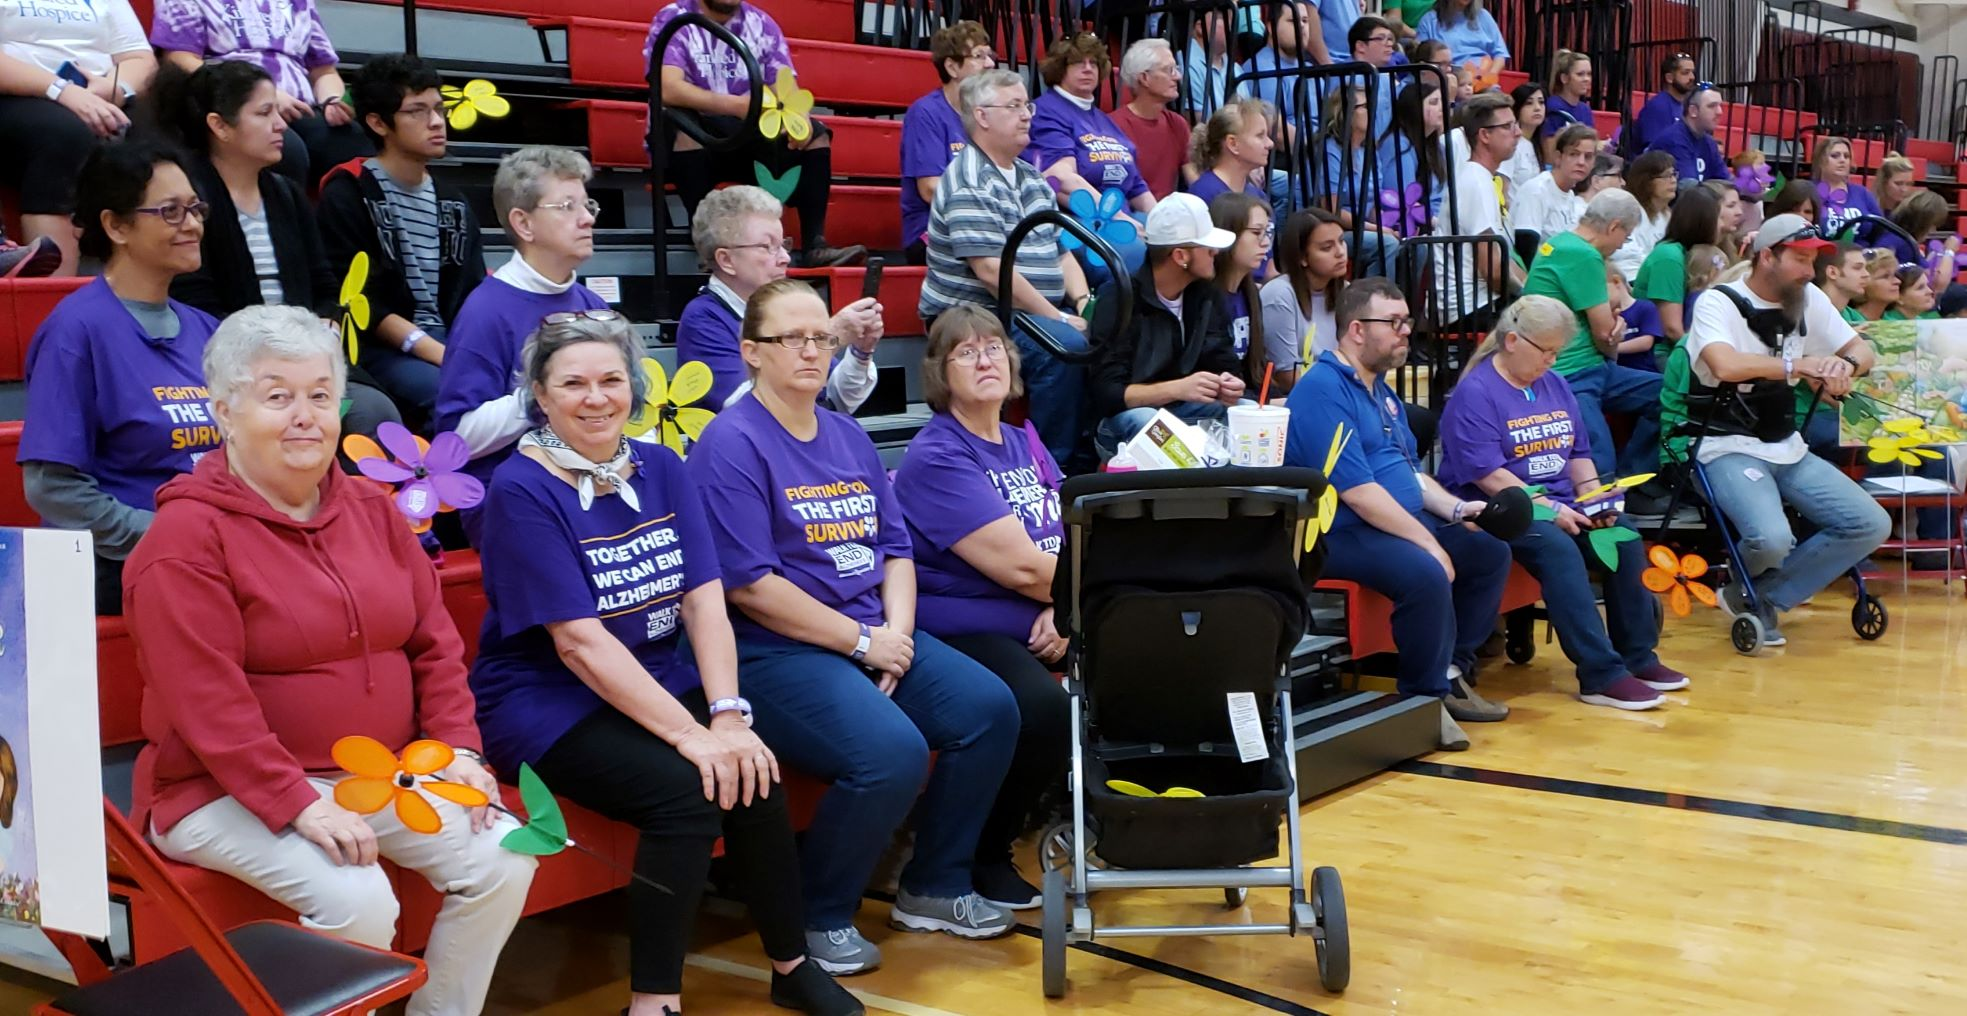 Participants unite for a heartfelt opeining ceremony prior to the commencement of the Alzheimer's walk. Note the Pilot members among the group.